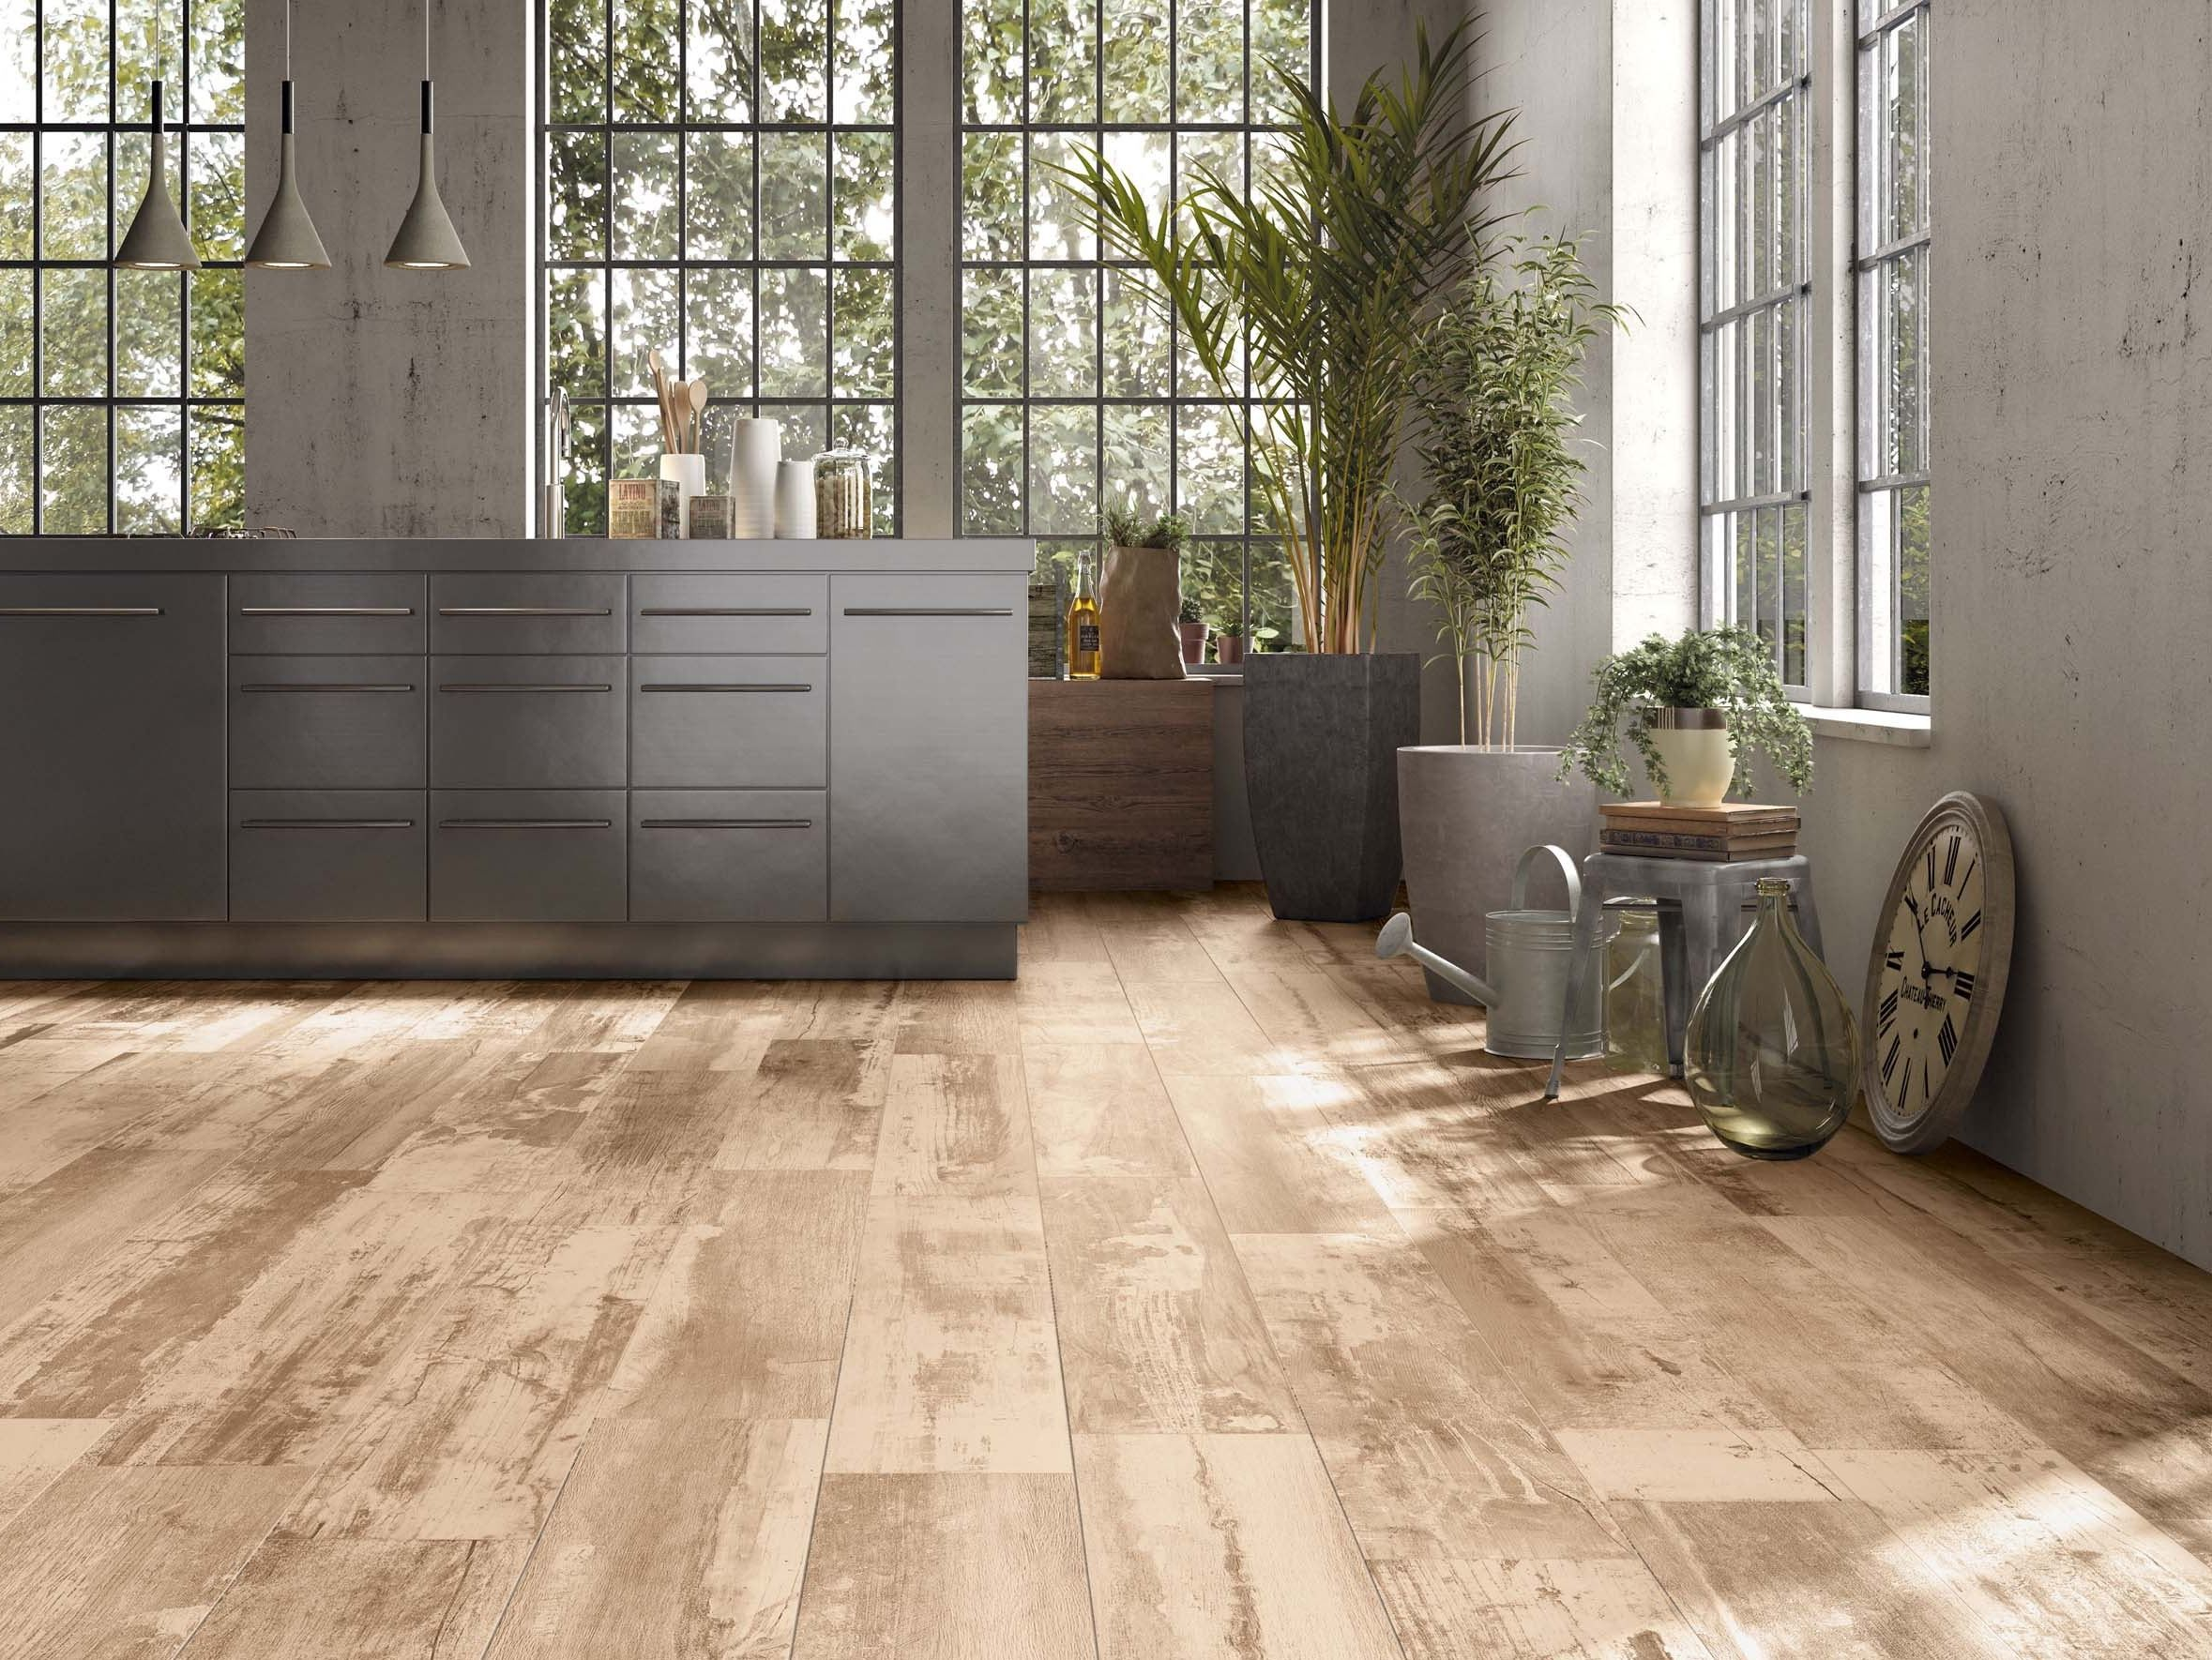 Porcelain stoneware wall floor tiles with wood effect REMAKE by